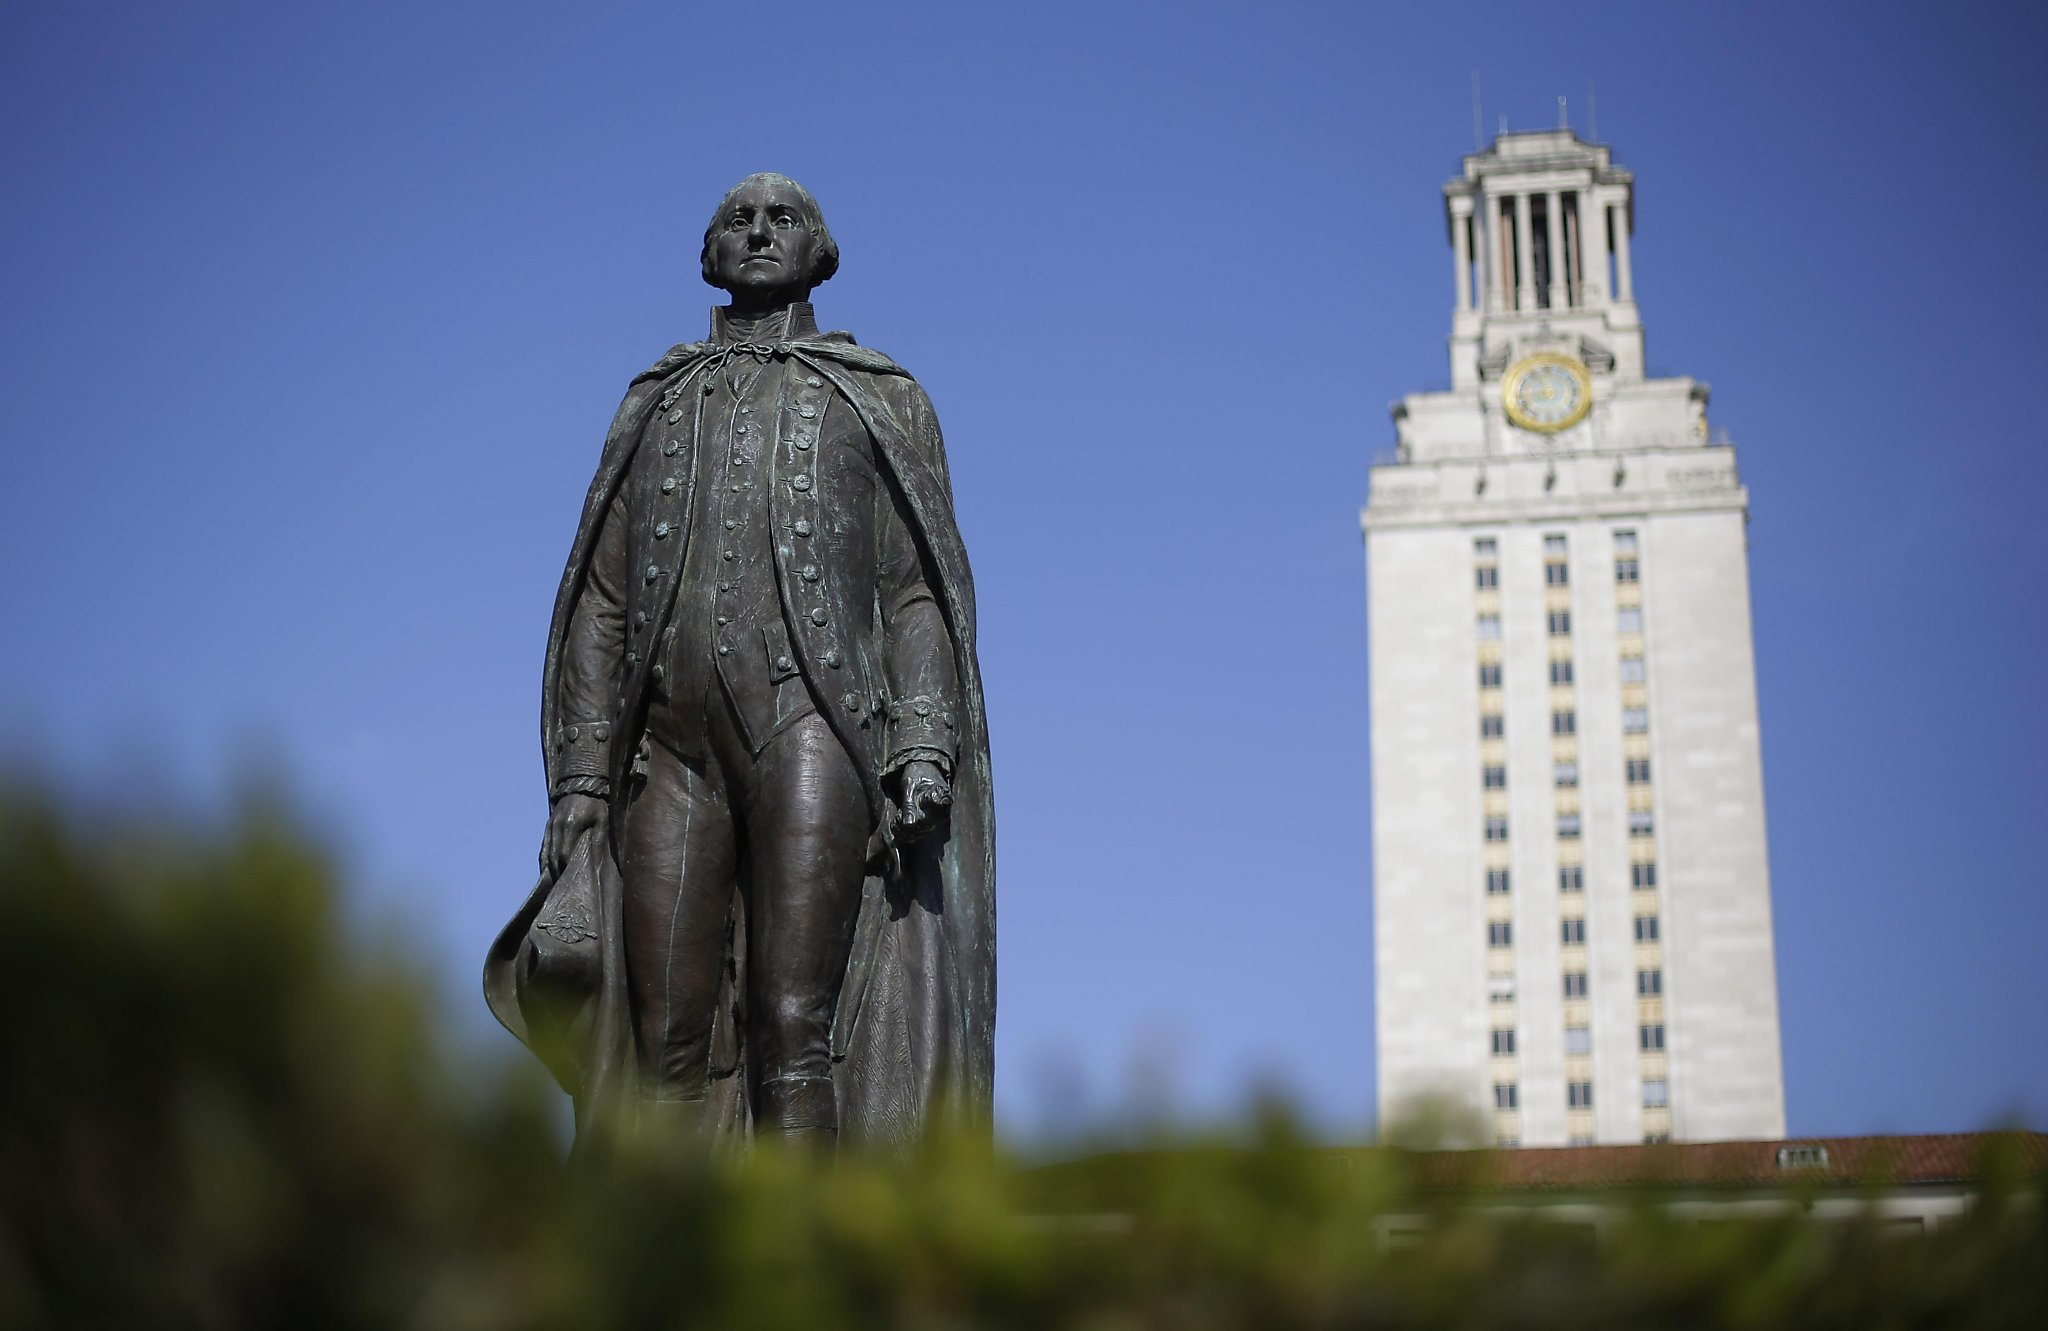 Masculinity is not a 'mental health issue,' University of Texas clarifies after ...